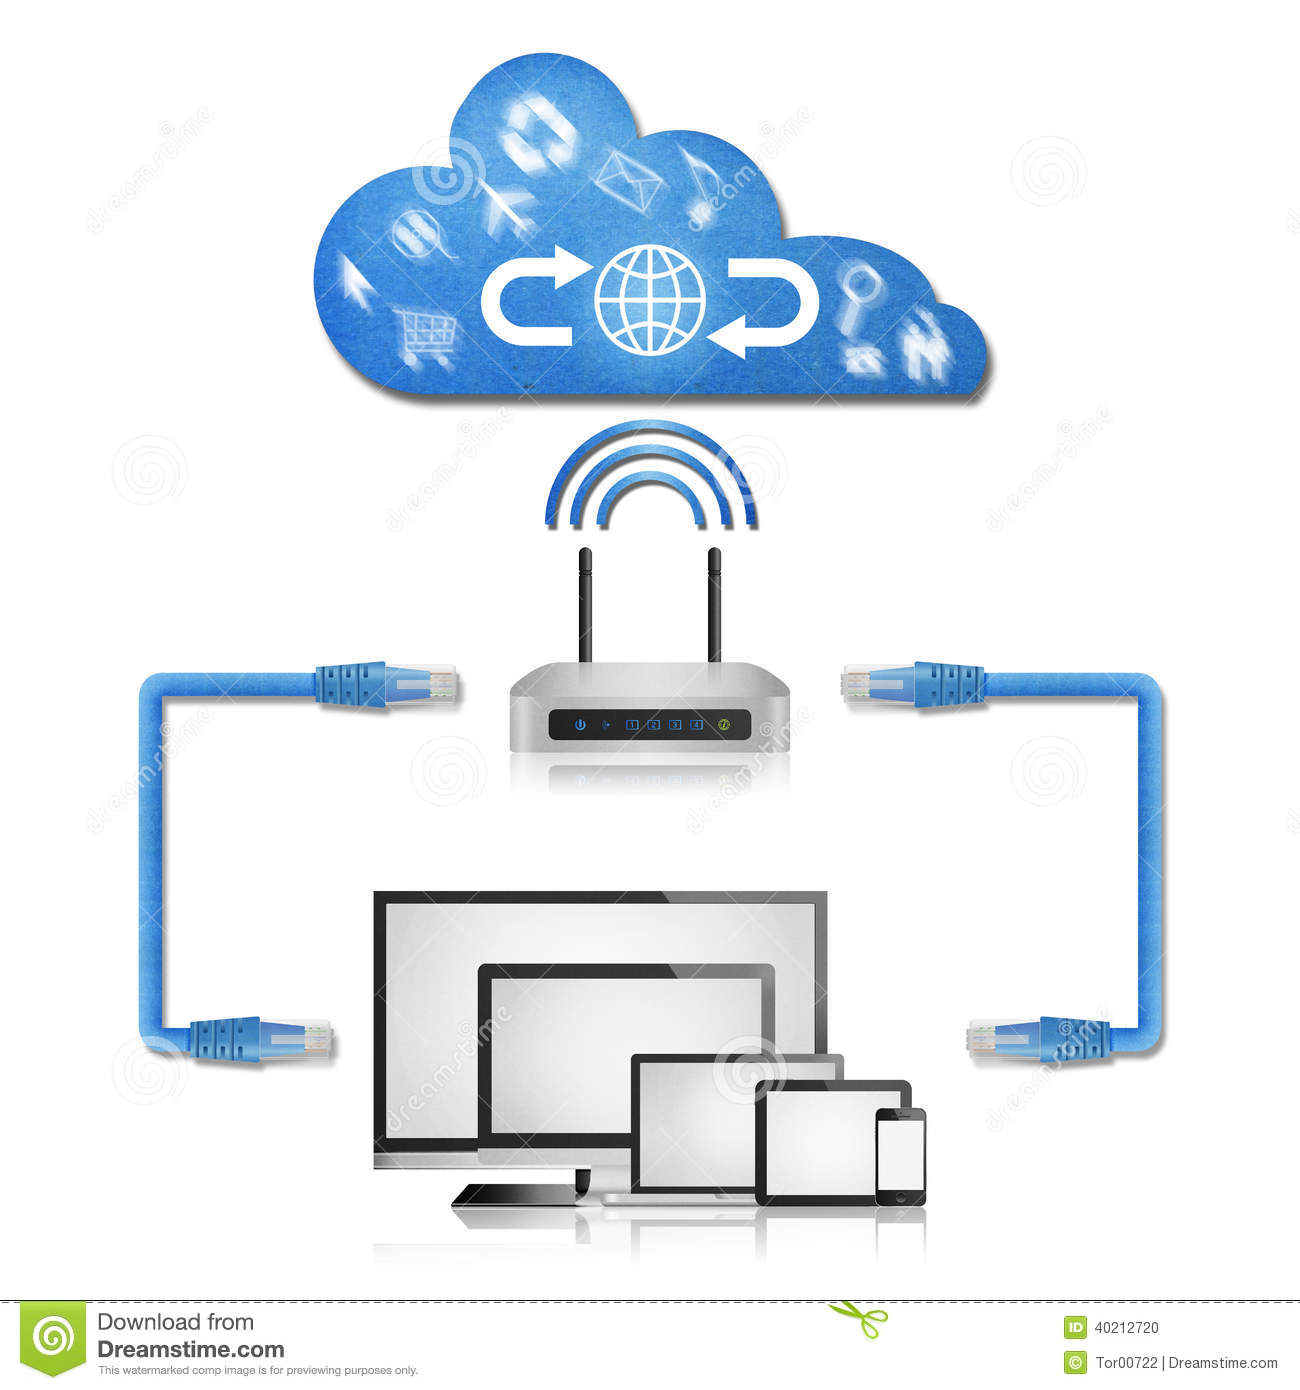 Modem Router Connection Diagram Detailed Schematic Diagrams Home Network With Switch And